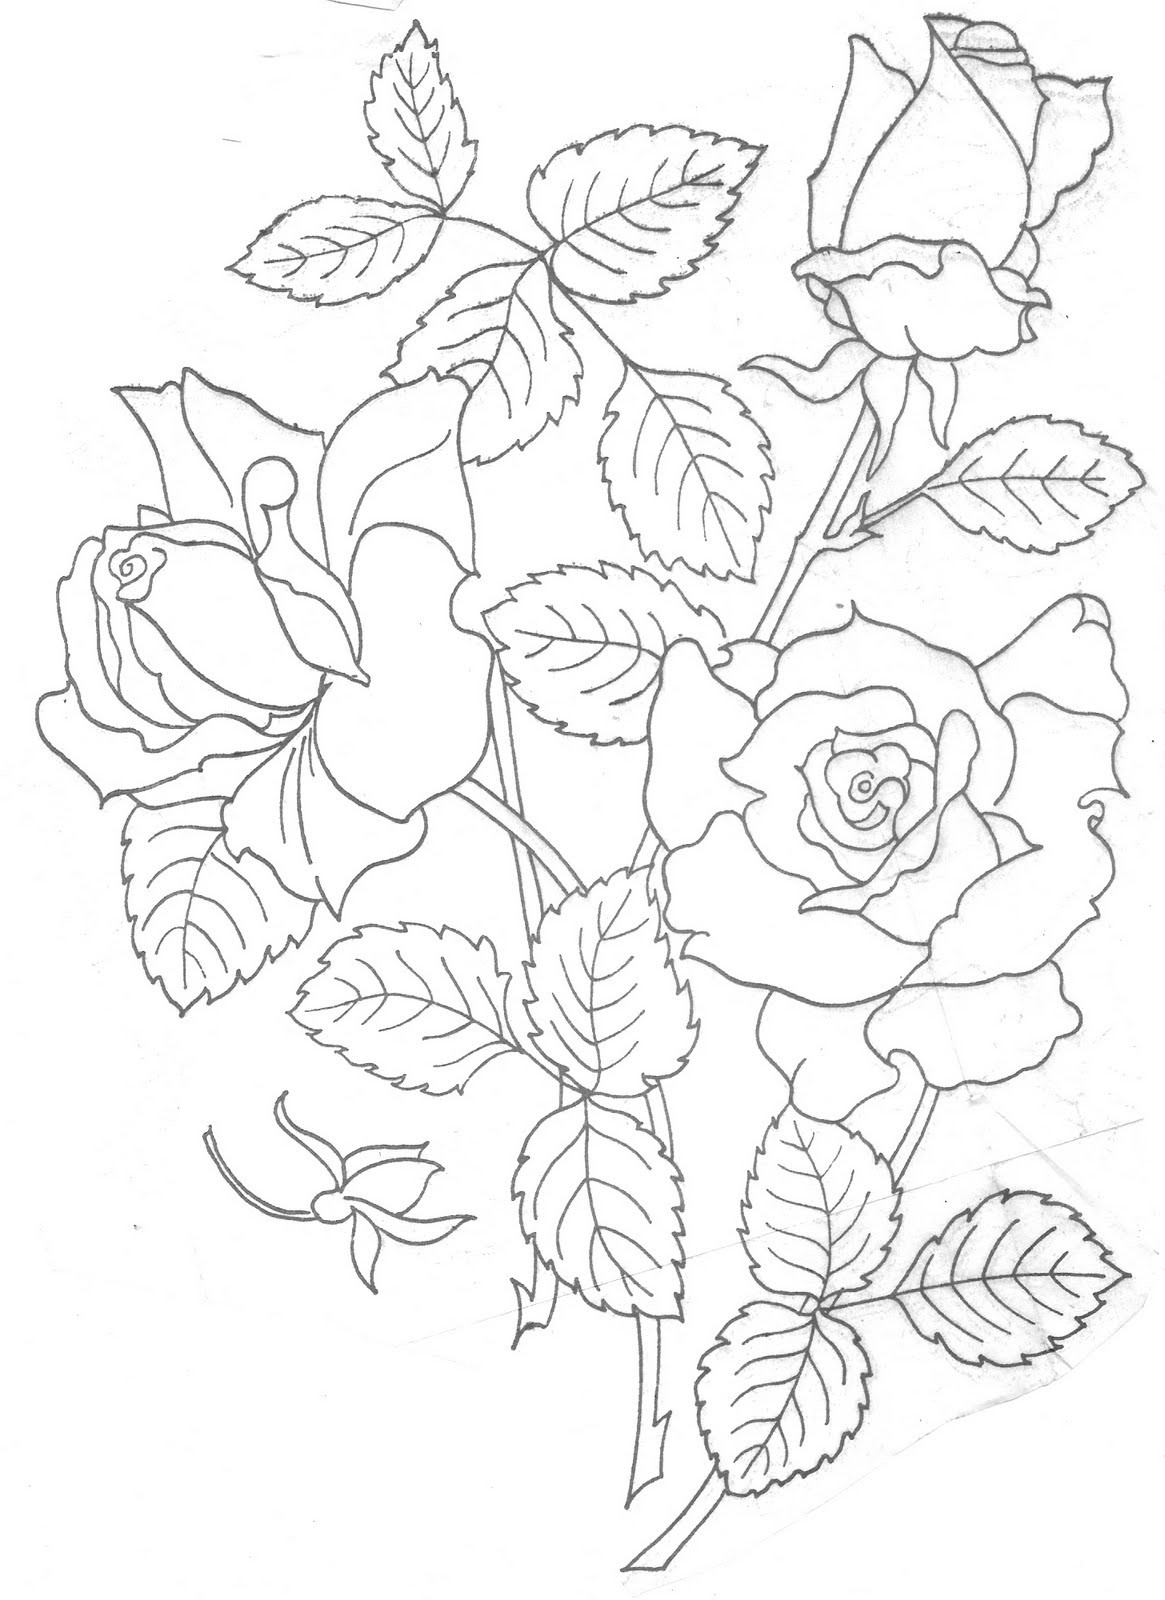 Hand Embroidery Patterns Best Of Blogginess Embroidery Patterns Of Adorable 44 Pictures Hand Embroidery Patterns